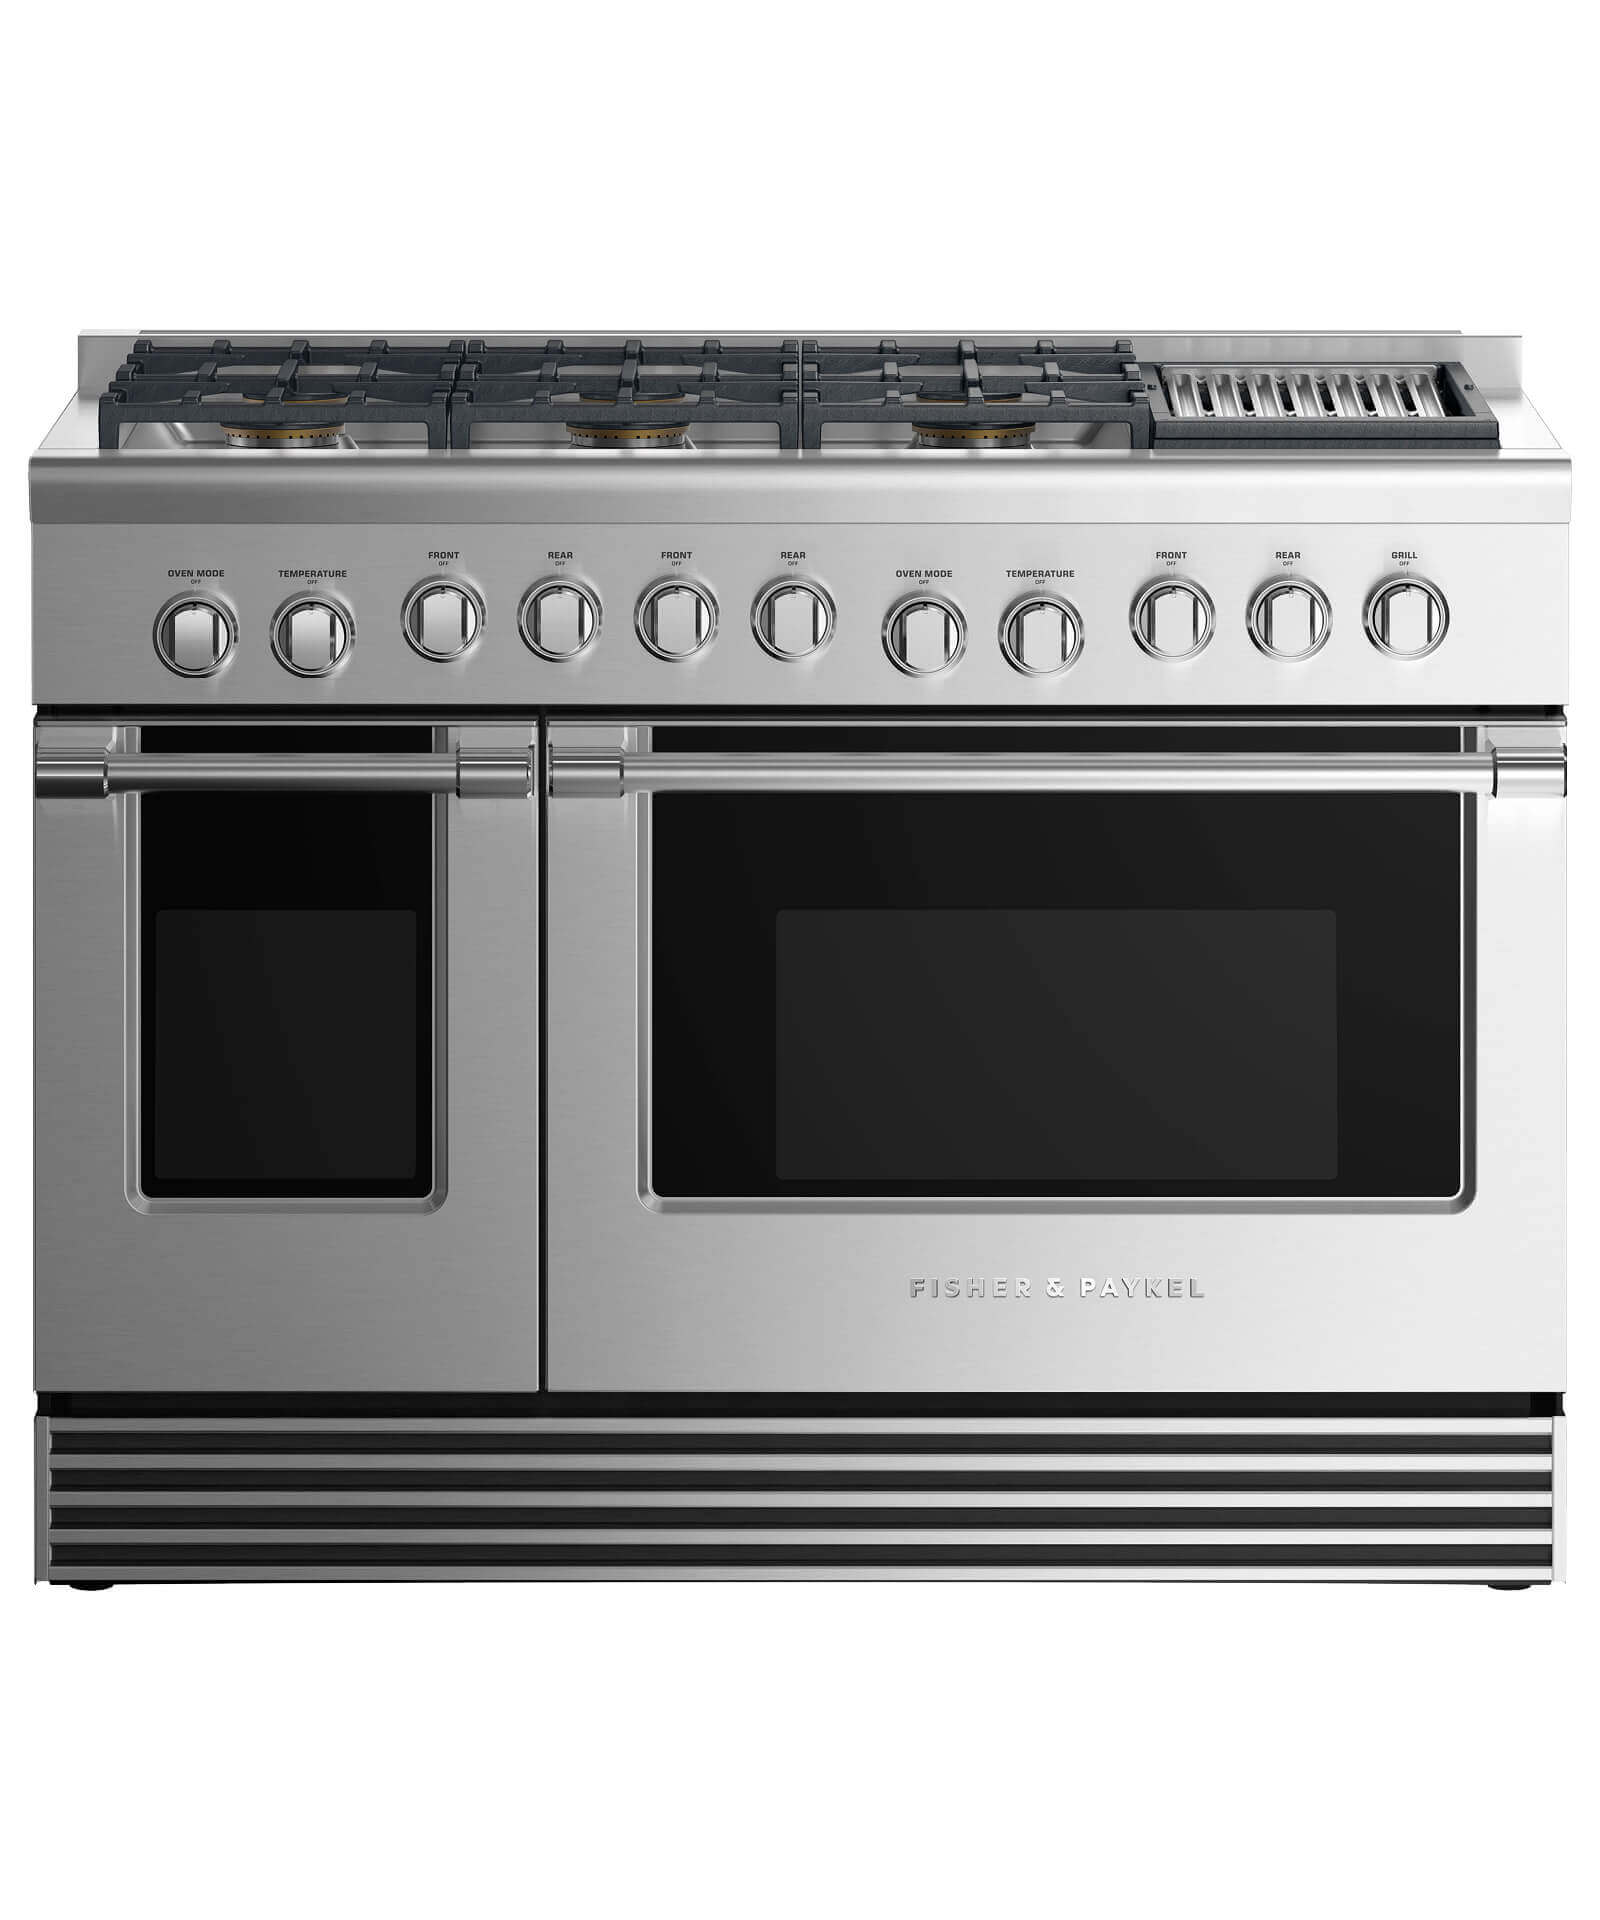 kitchen ranges two seat table rdv2 486gl l n 48 gas range 6 burners with grill fisher paykel us dual fuel